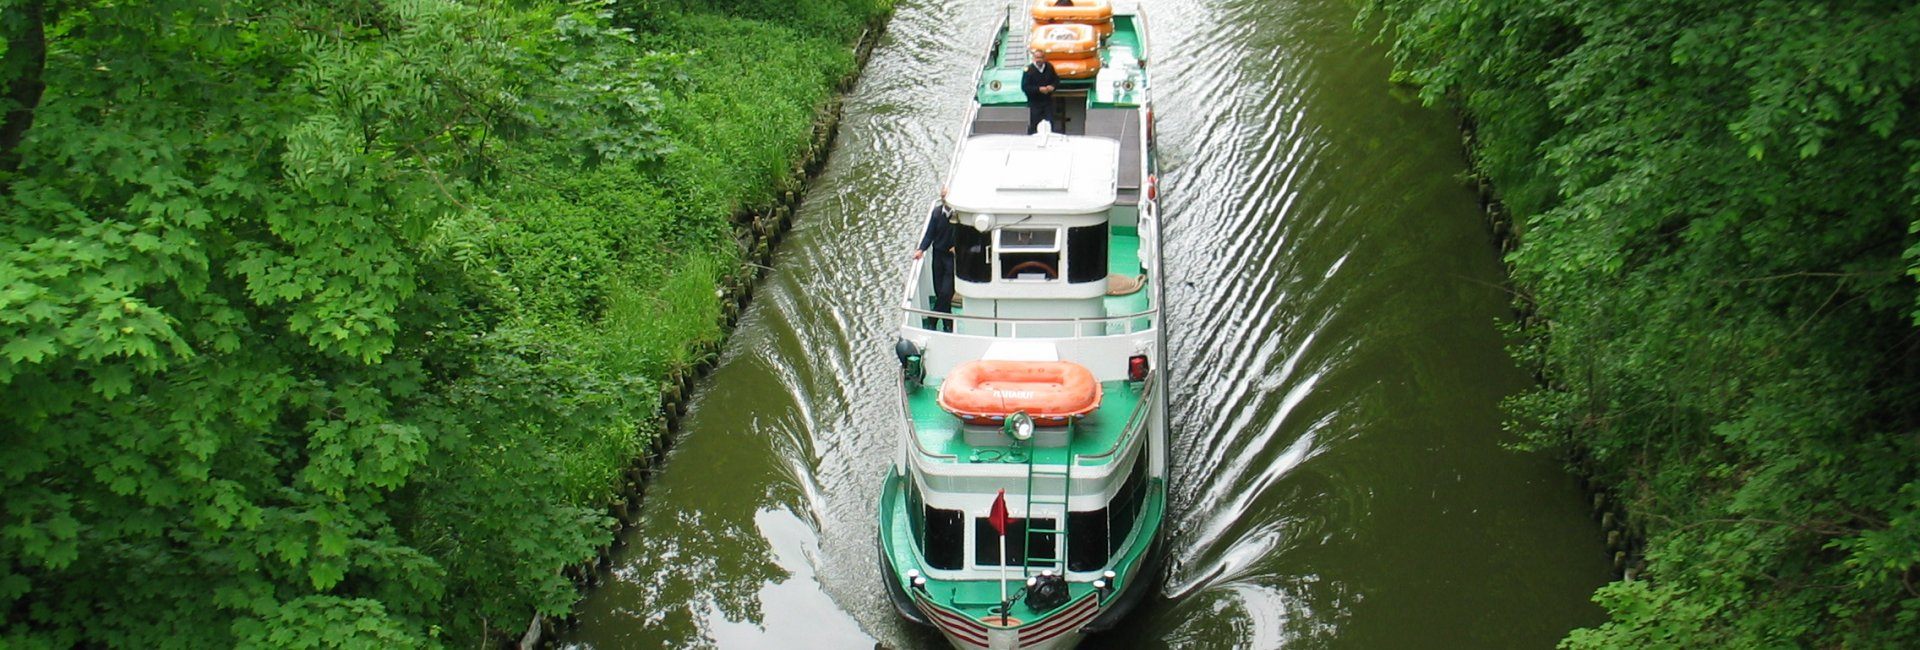 Elbląski Canal connecting Ostróda with Elbląg (one of the waterways connects Stare Jabłonki with Ostróda)